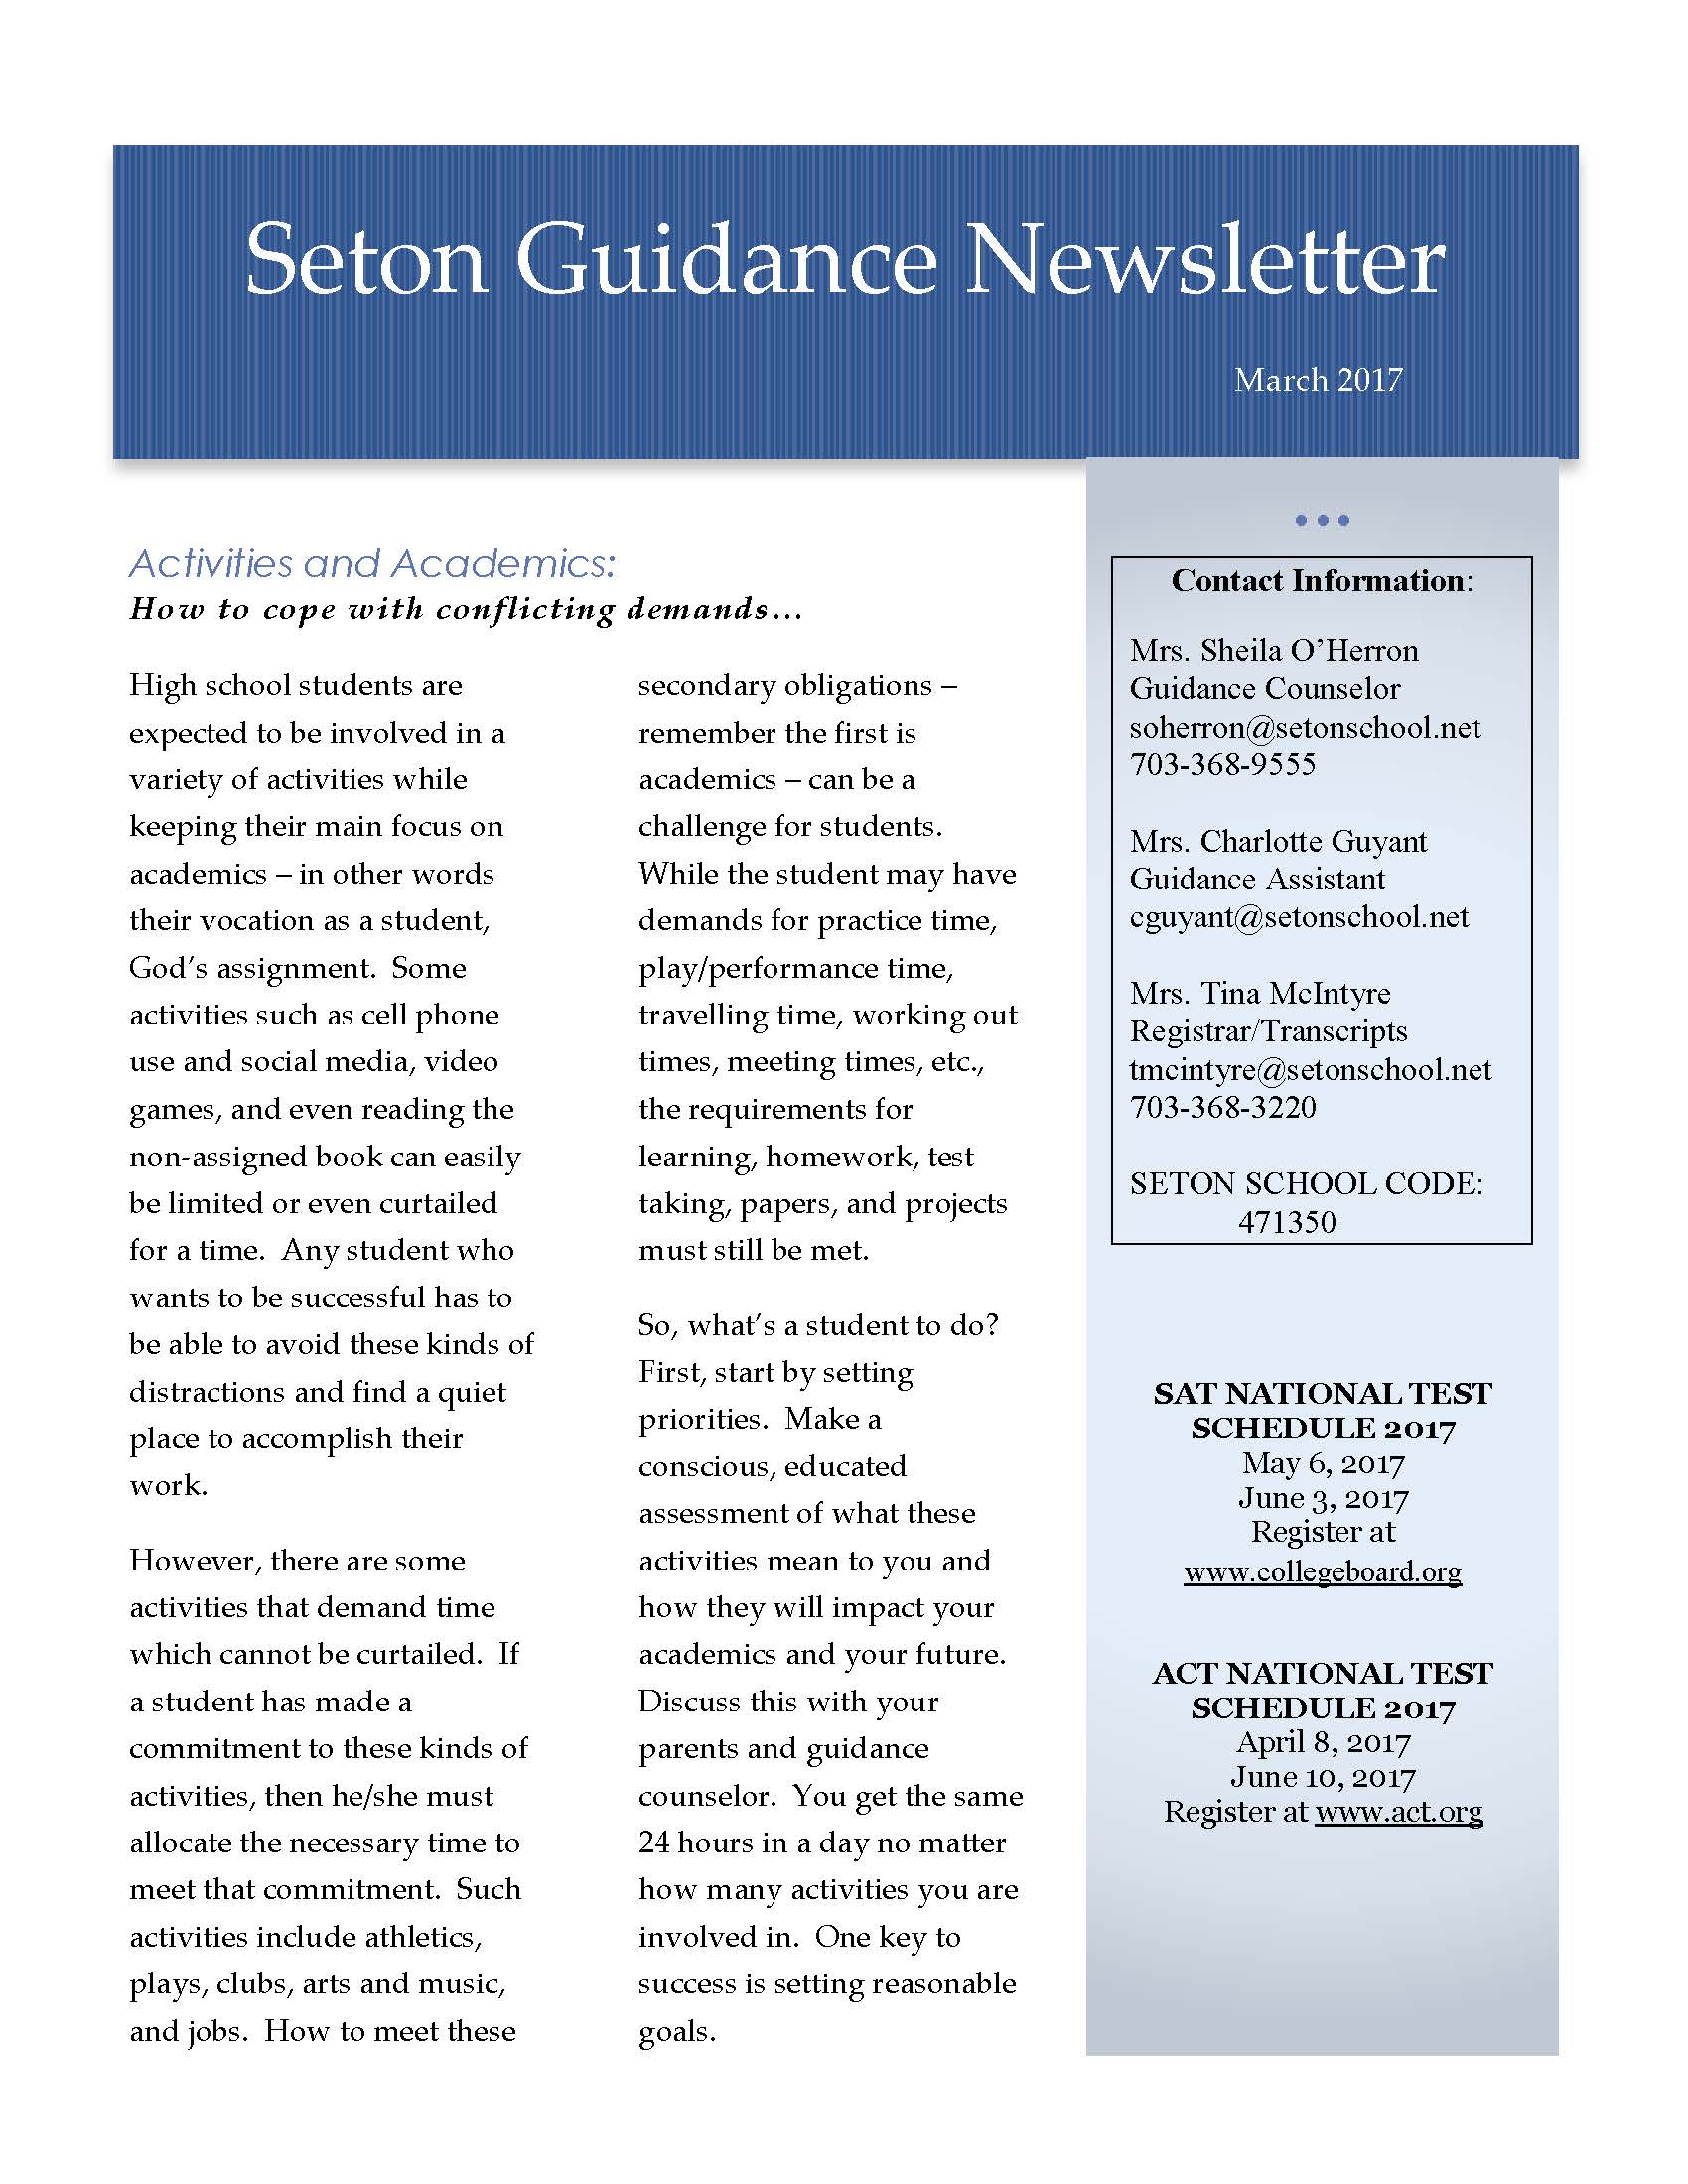 March 2017 Guidance Newsletter